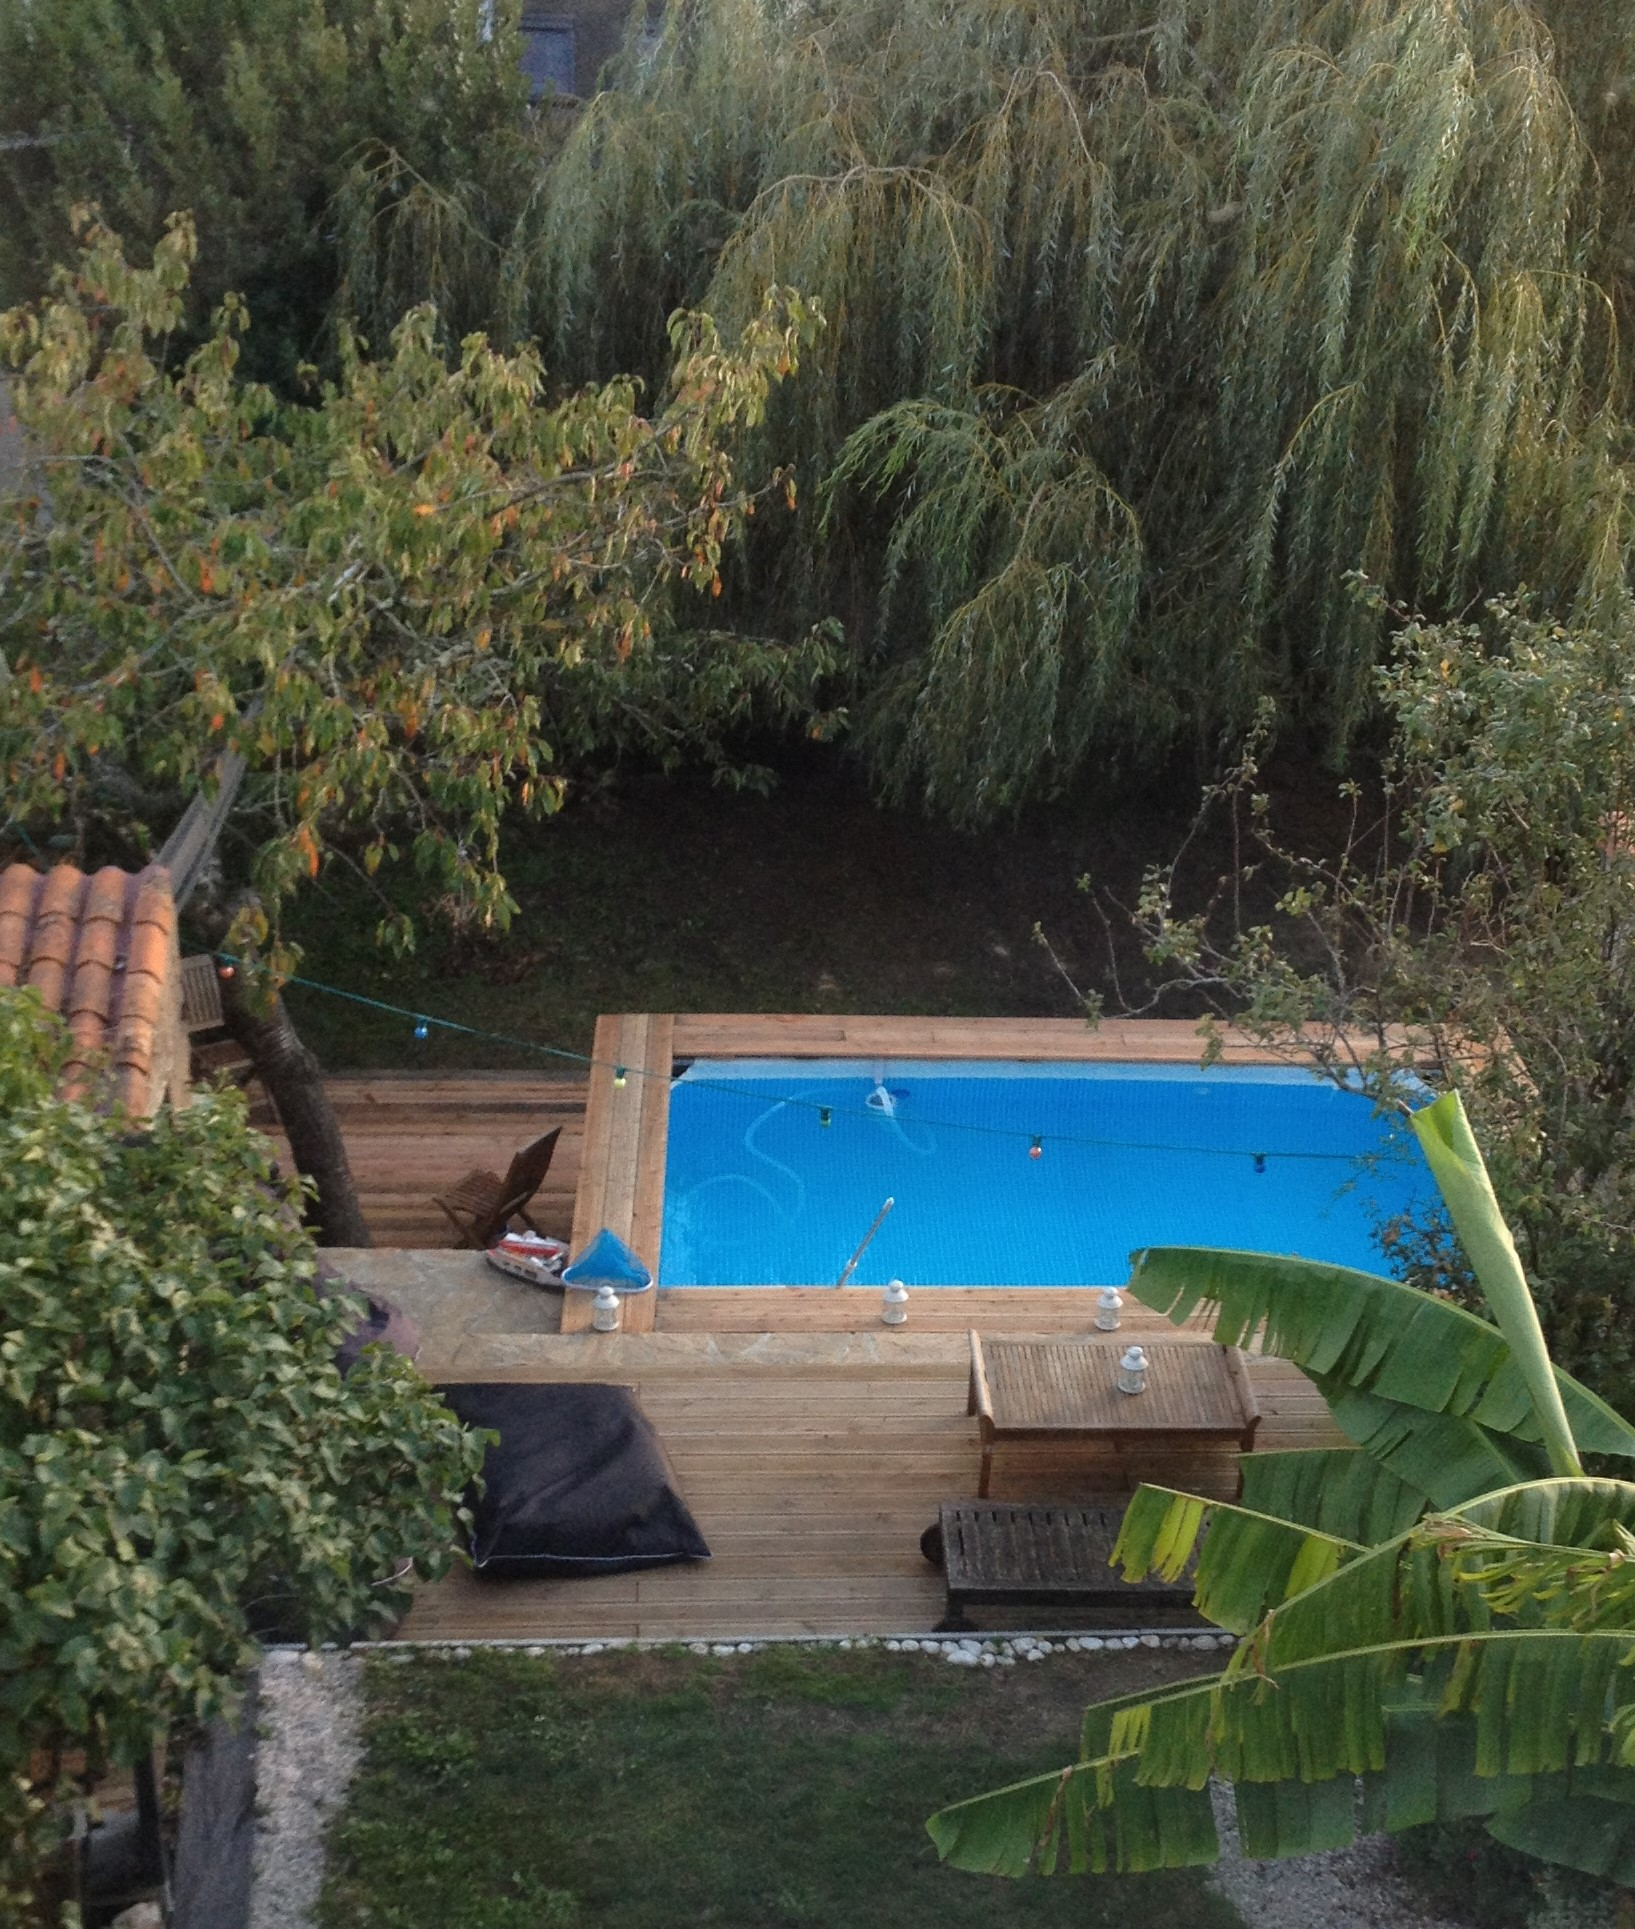 Comment encastrer sa piscine hors sol blog de raviday for Piscine tubulaire